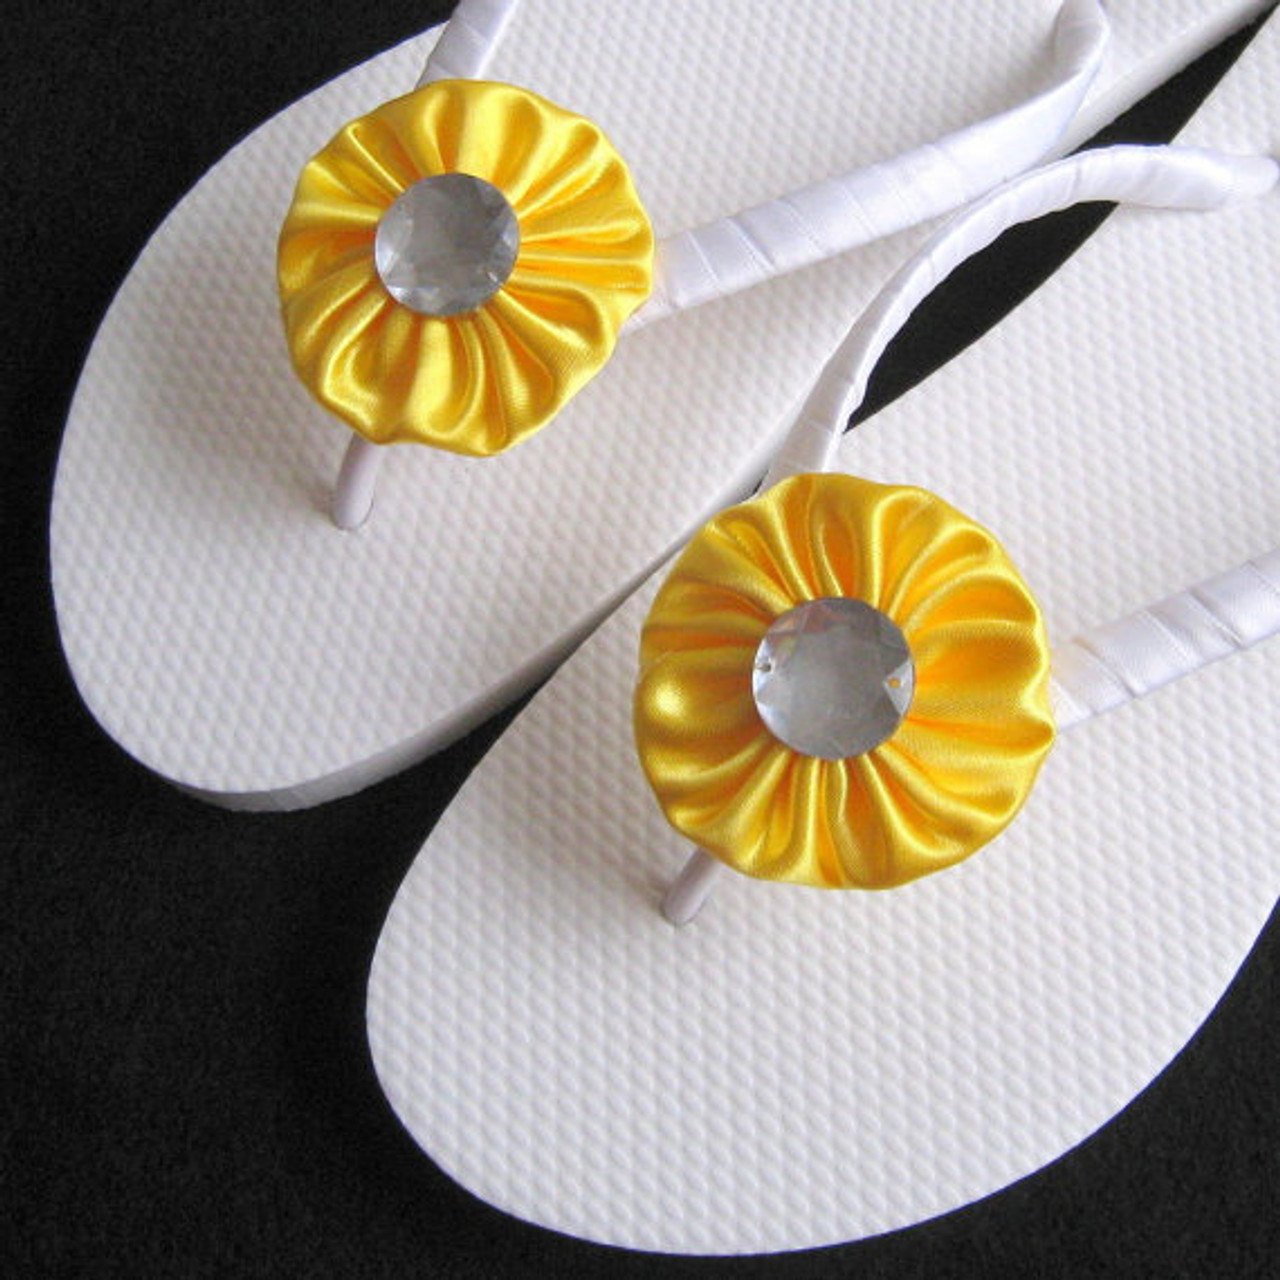 bd576361e9c3 Lemon Yellow Bridal Flip Flops - 1 Adult Size - Wedding Favors ...